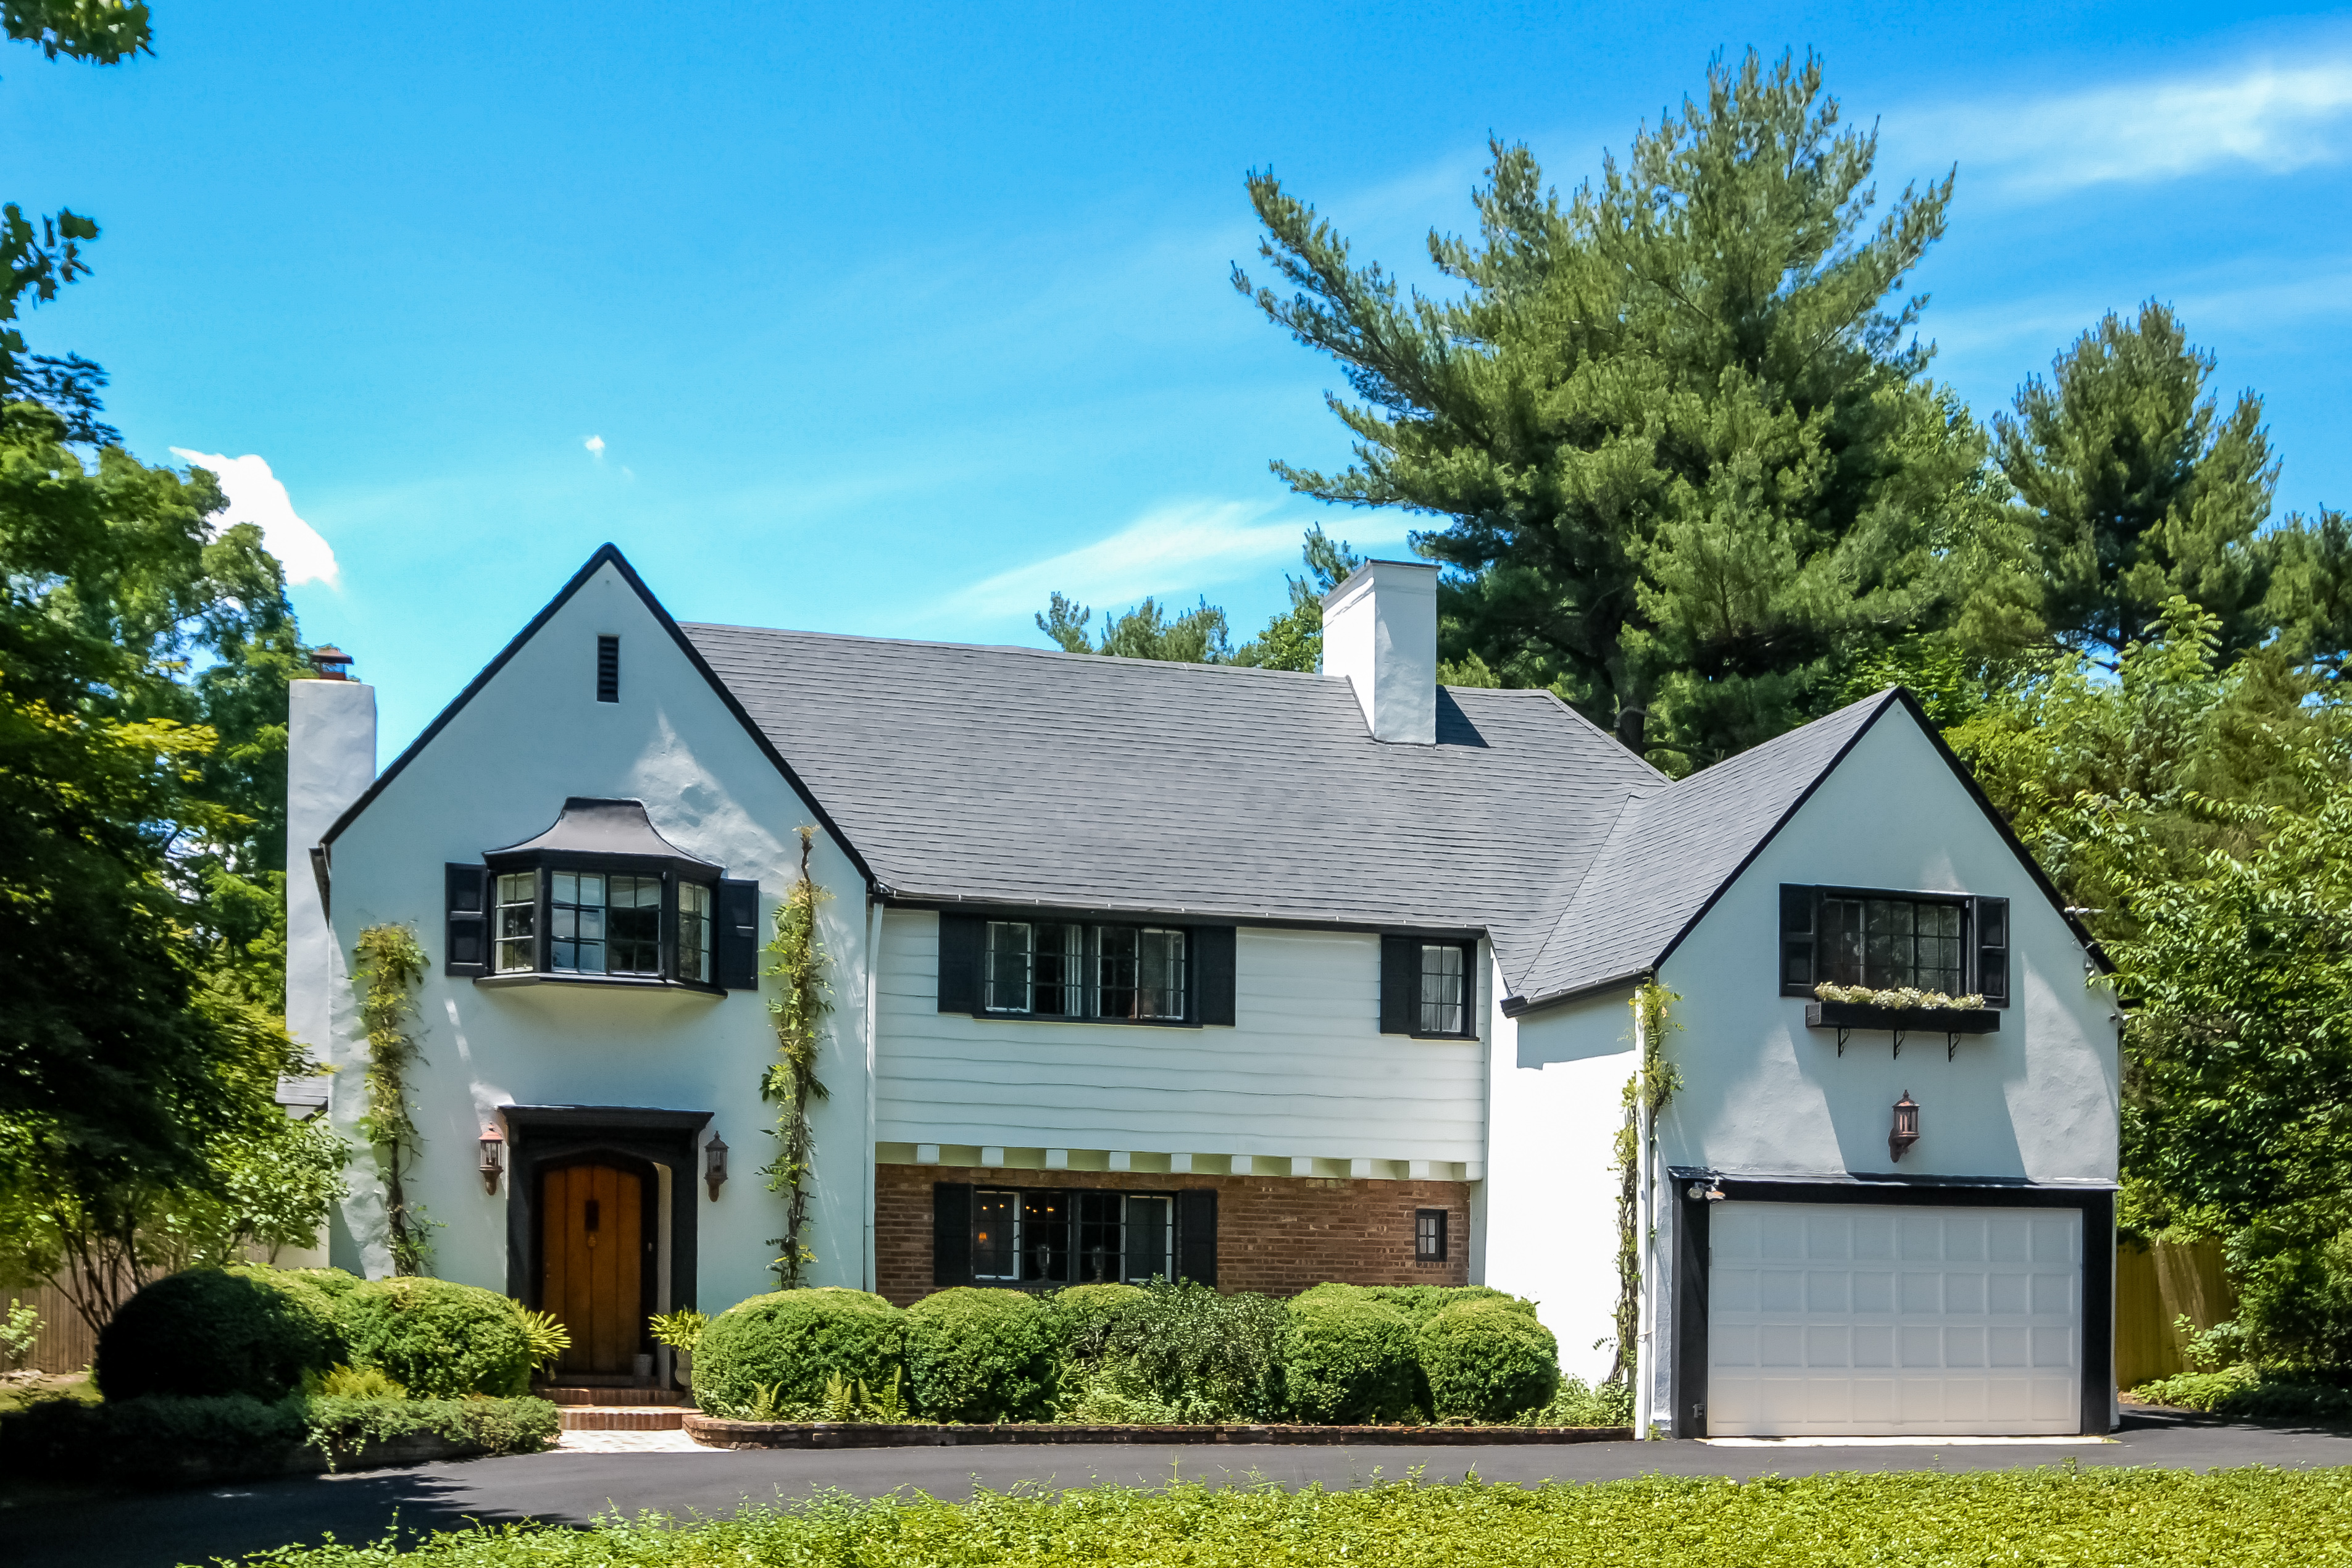 Single Family Home for Sale at Enchanting Cotswold English Country Style Home! 28 Erie Street Irvington, New York, 10533 United States